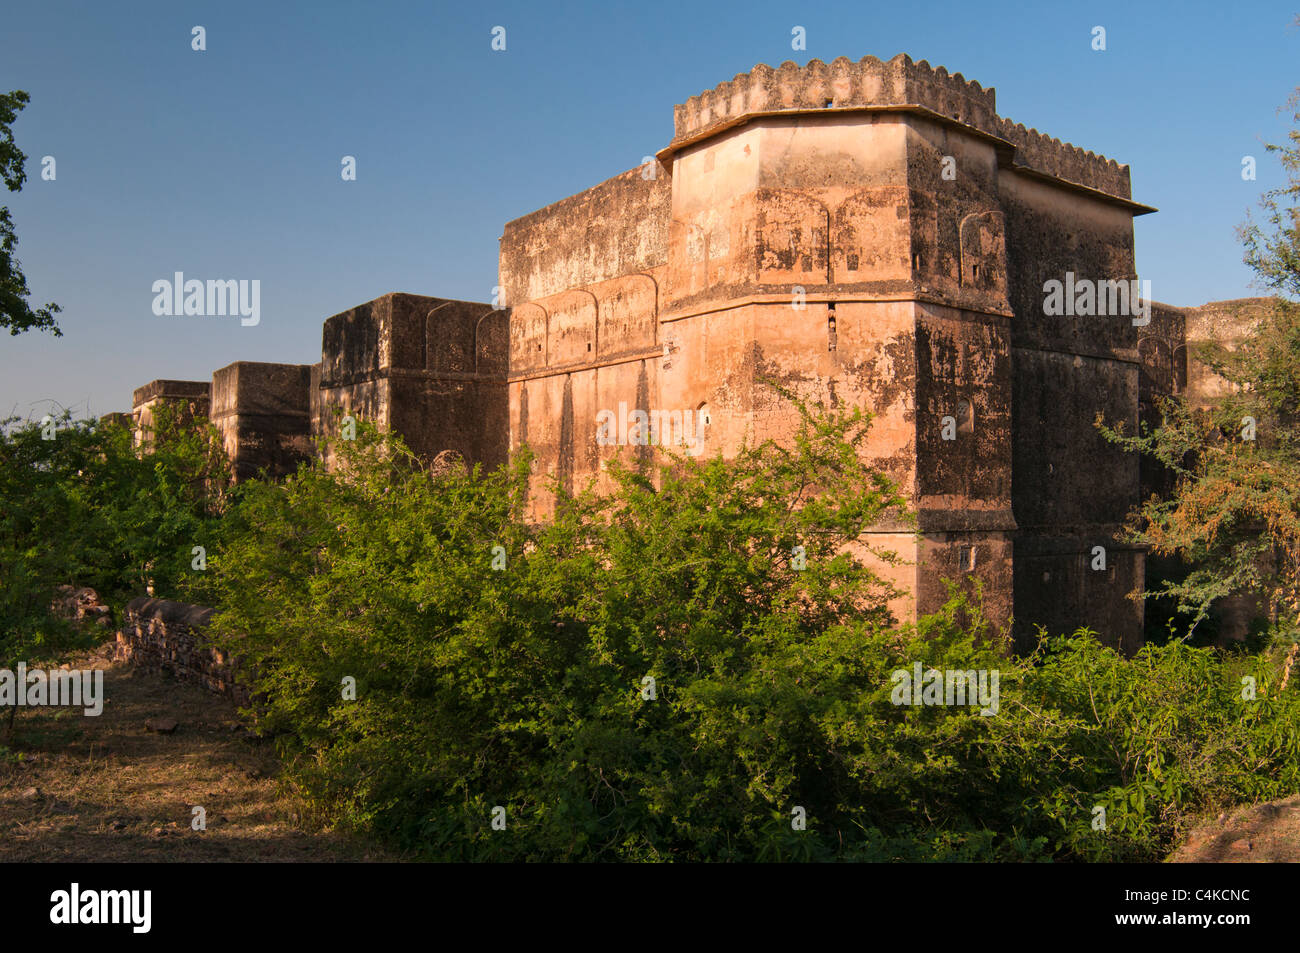 The Taragarh Fort, or 'Star Fort', It was constructed in AD 1354 upon the top of steep hillside overlooking - Stock Image